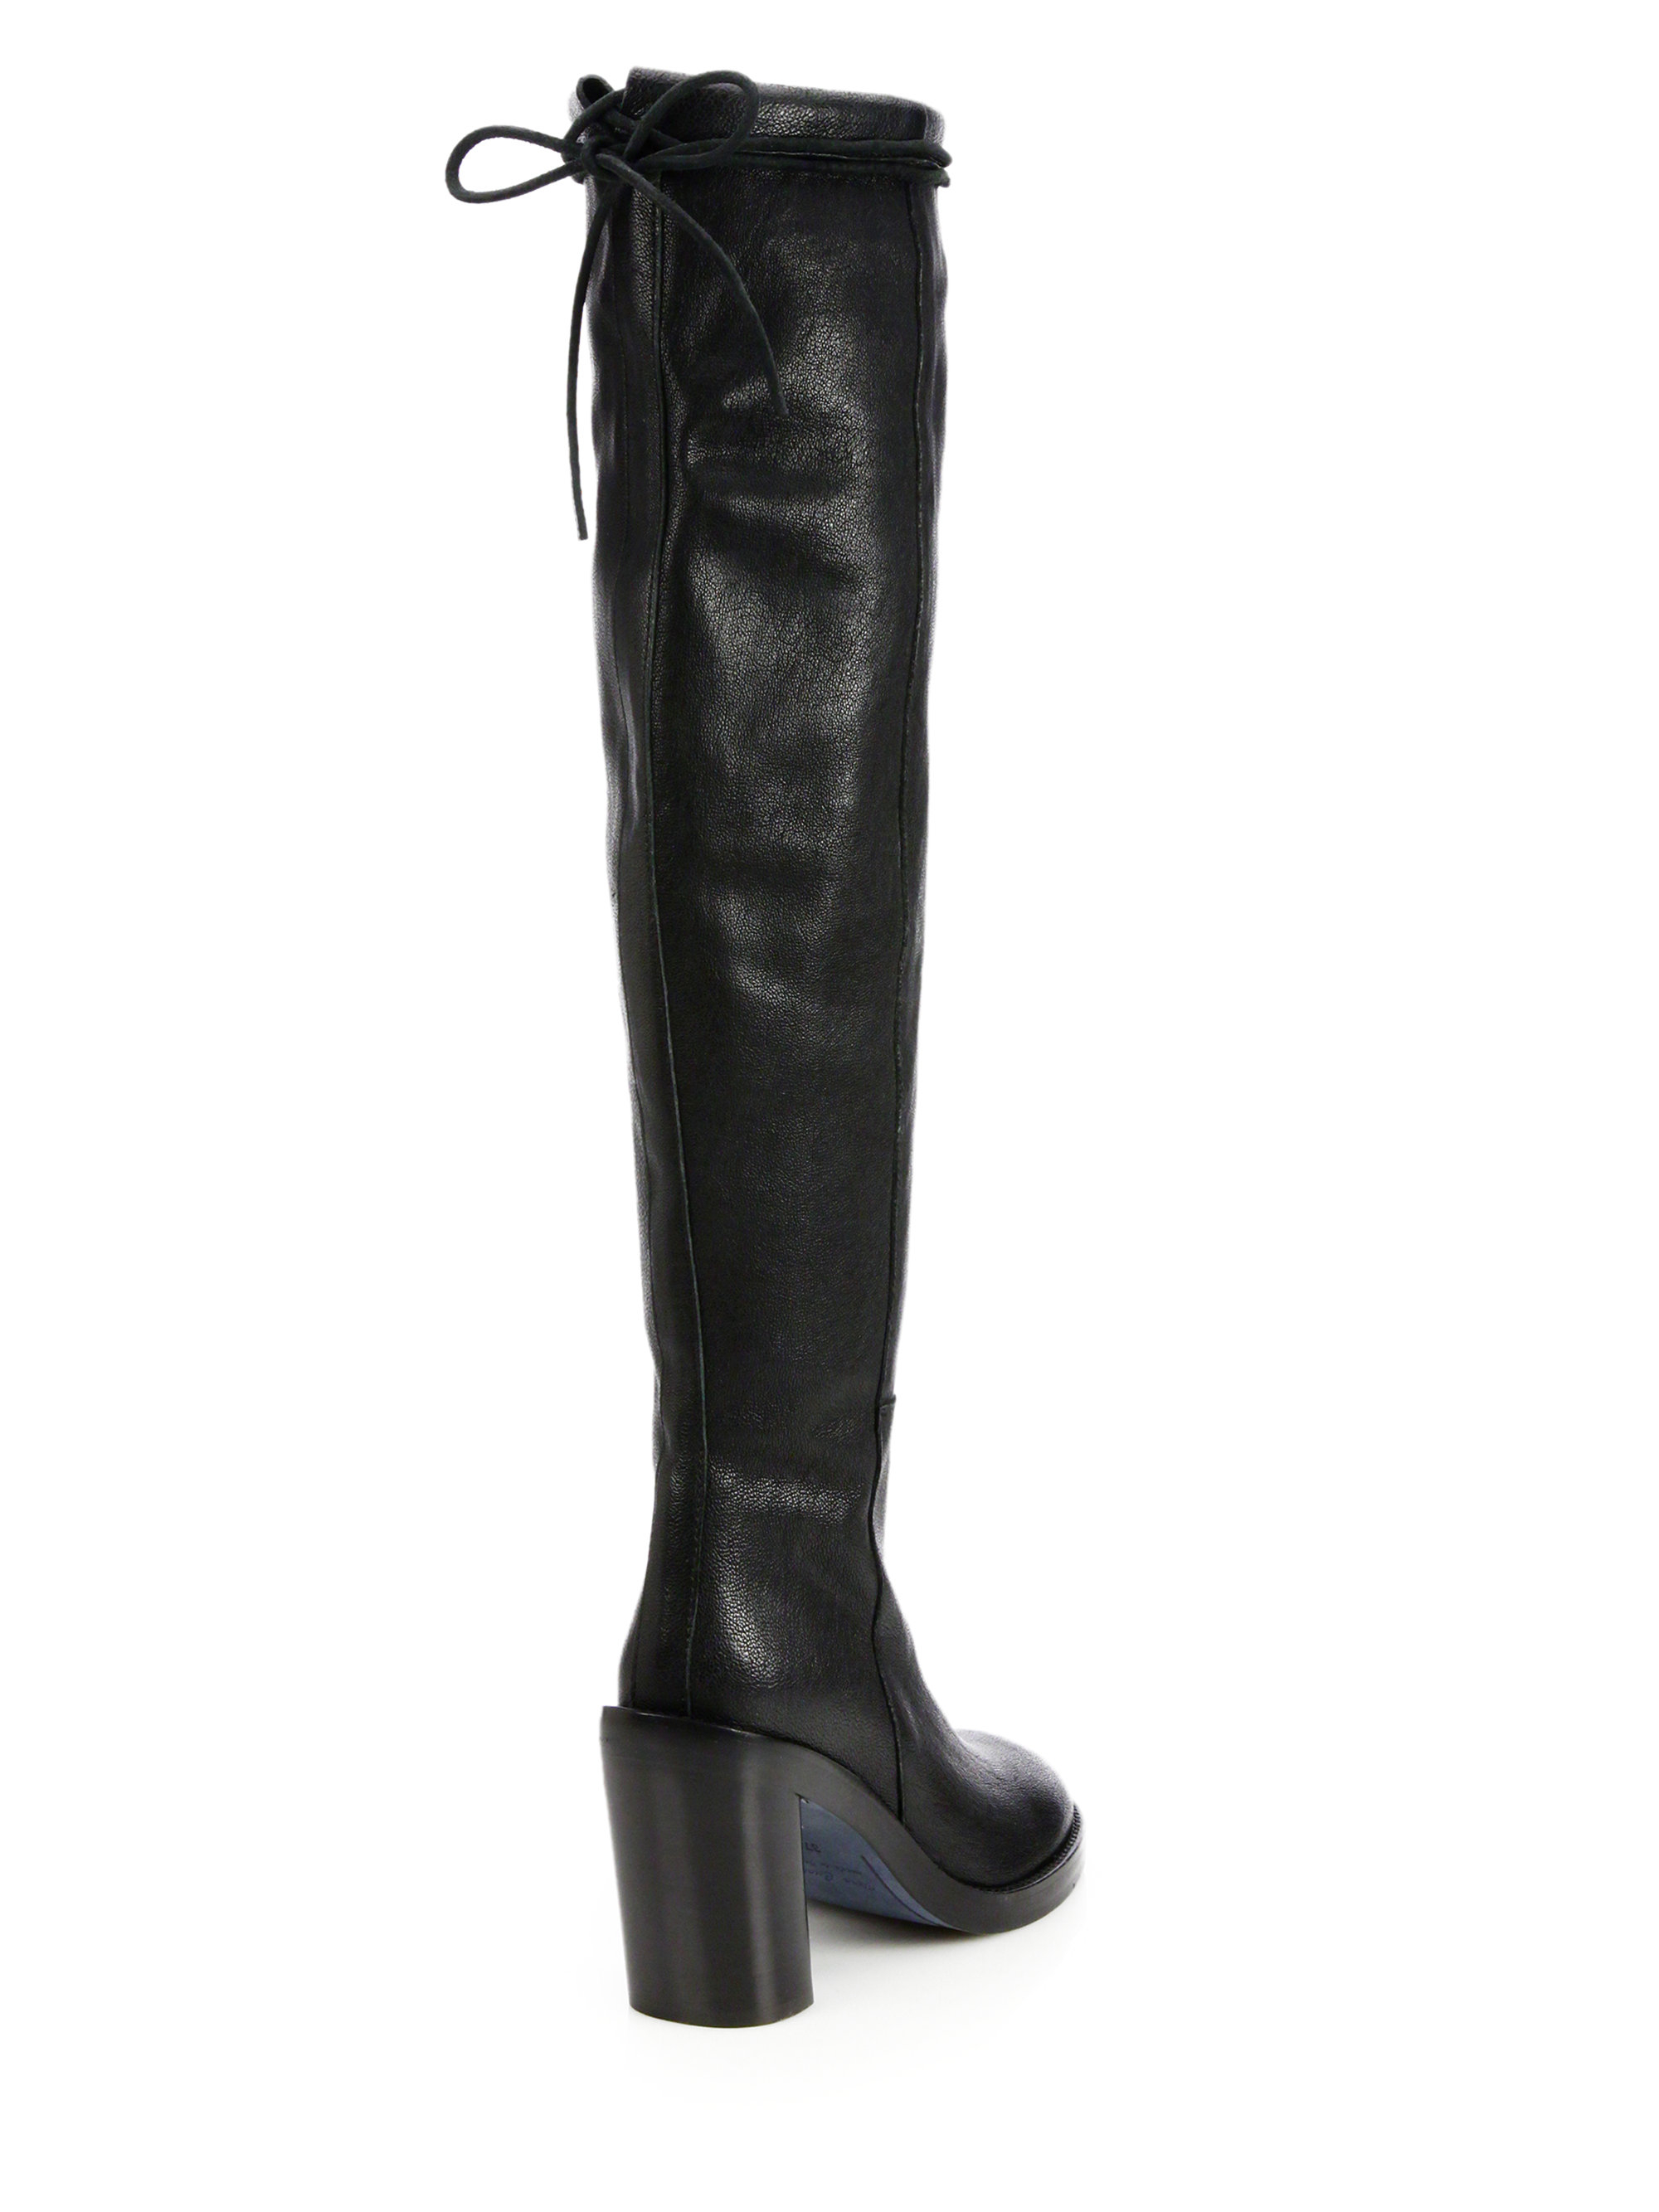 Ann Demeulemeester Round-Toe Leather Over-The-Knee Boots discount marketable discount 2015 cheap sale reliable qeE3uGHKas